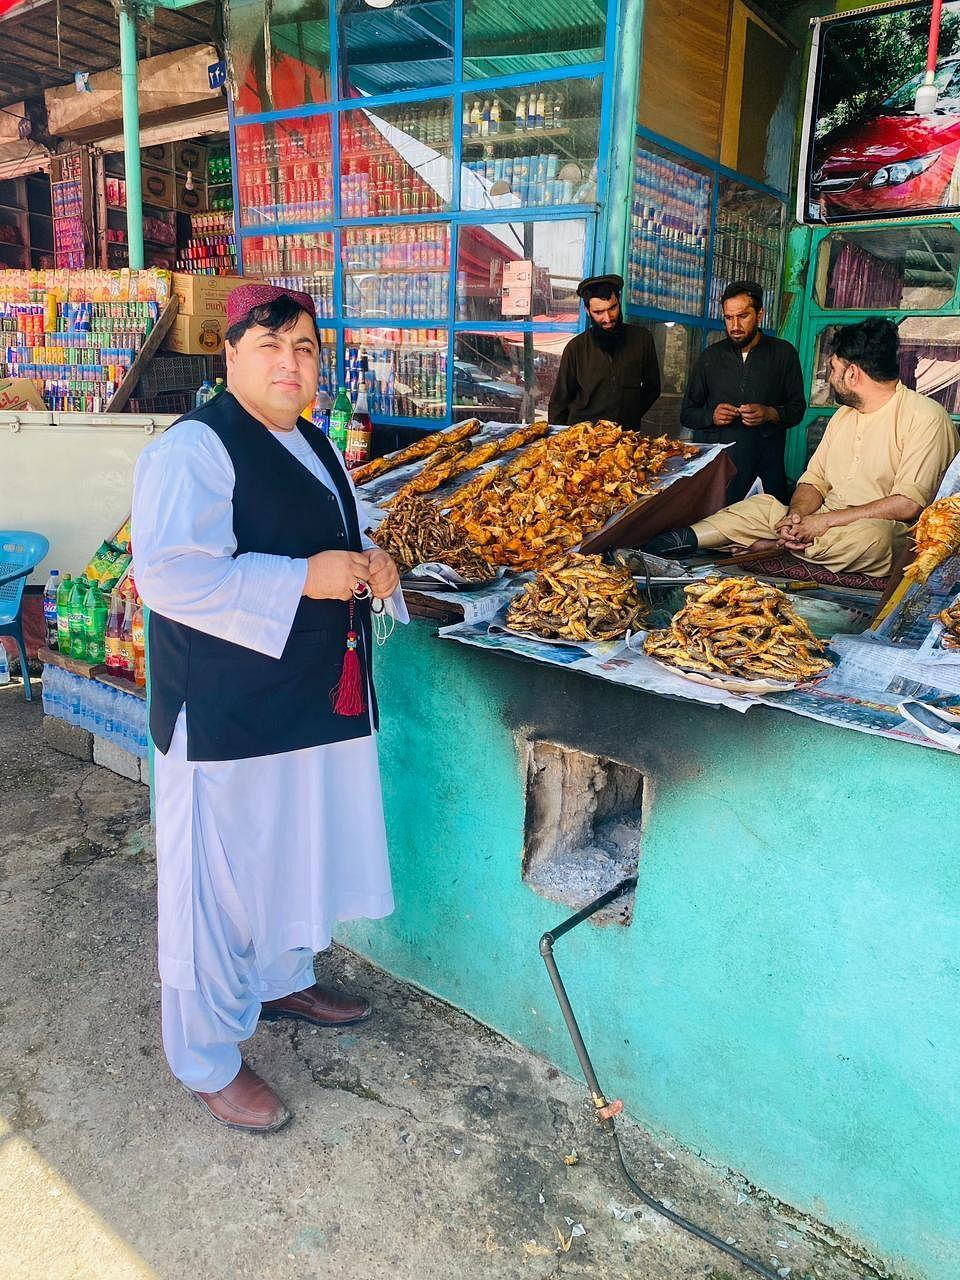 """<div class=""""paragraphs""""><p>Mohammad Khan says he has seen good days in Kabul before the Taliban took over.</p></div>"""